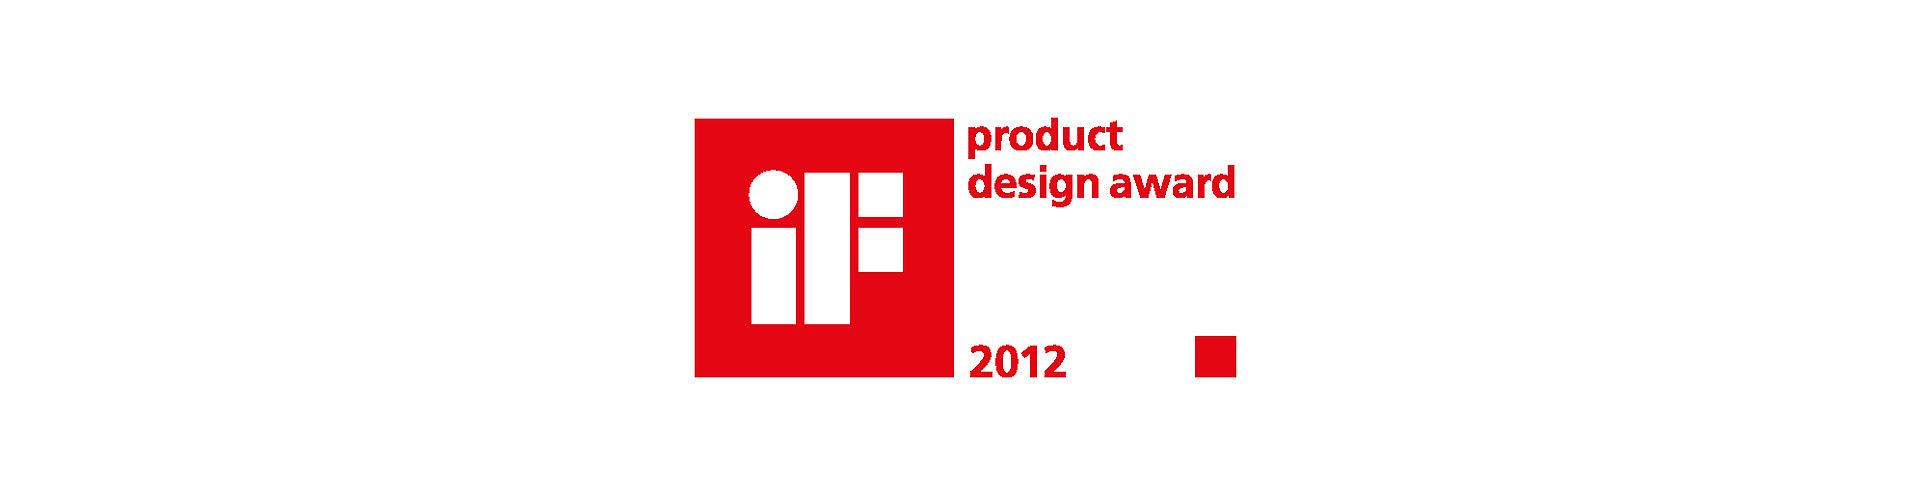 Handsurgery – Ixos iF Design AWARD 2012